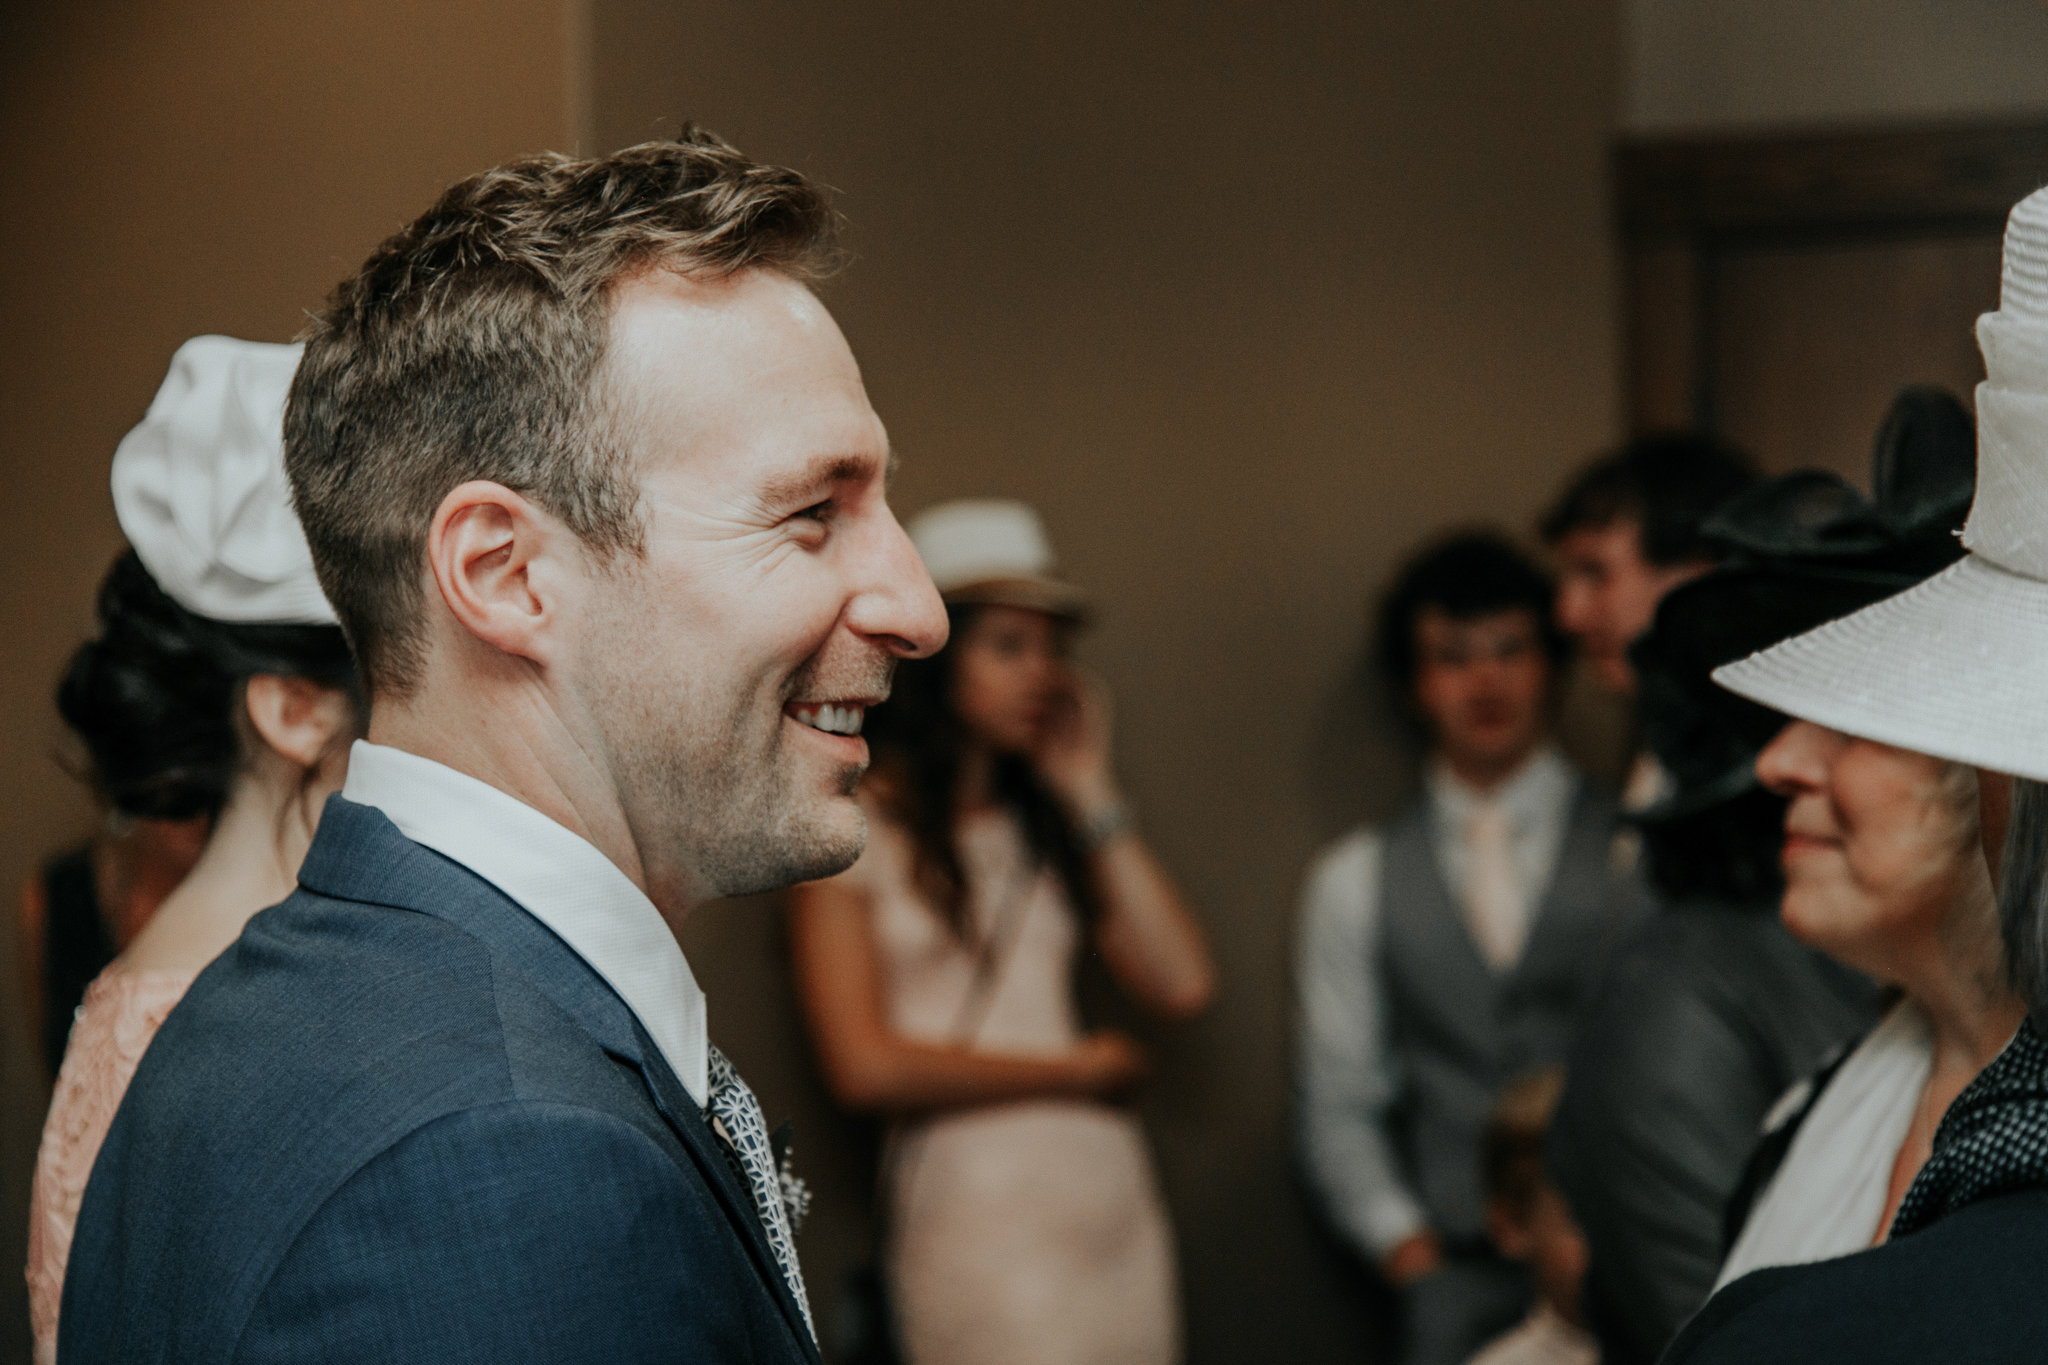 lethbridge-wedding-photographer-love-and-be-loved-photography-steven-marlene-reformed-church-photo-picture-image-13.jpg